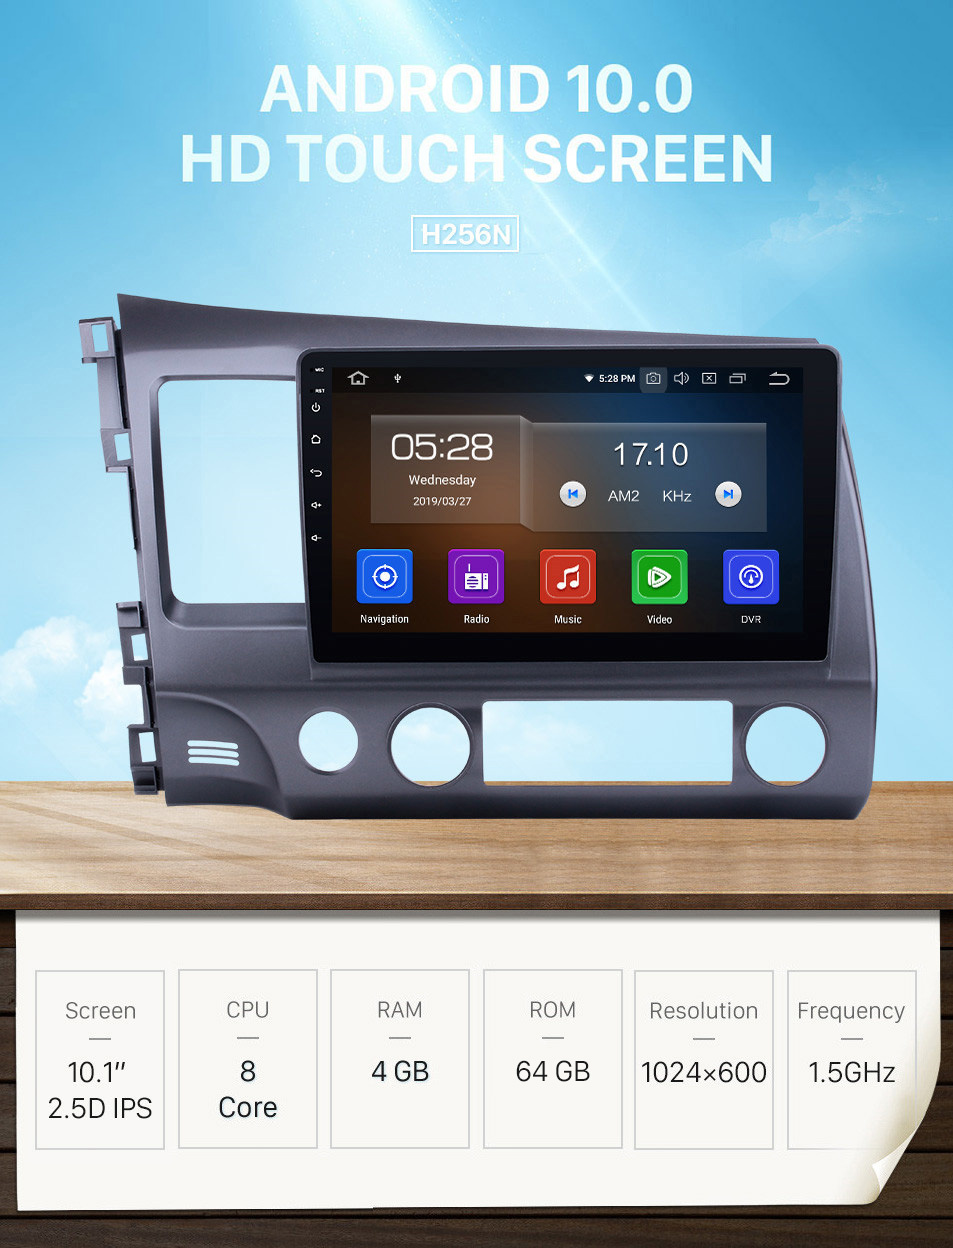 Seicane 10.1 inch HD 1024*600 touchscreen Android 10.0 GPS Navigation For 2006-2011 Honda Civic Bluetooth Car Audio System Support Mirror Link 4G WiFi Backup Camera DVR DAB+ Steering Wheel Control